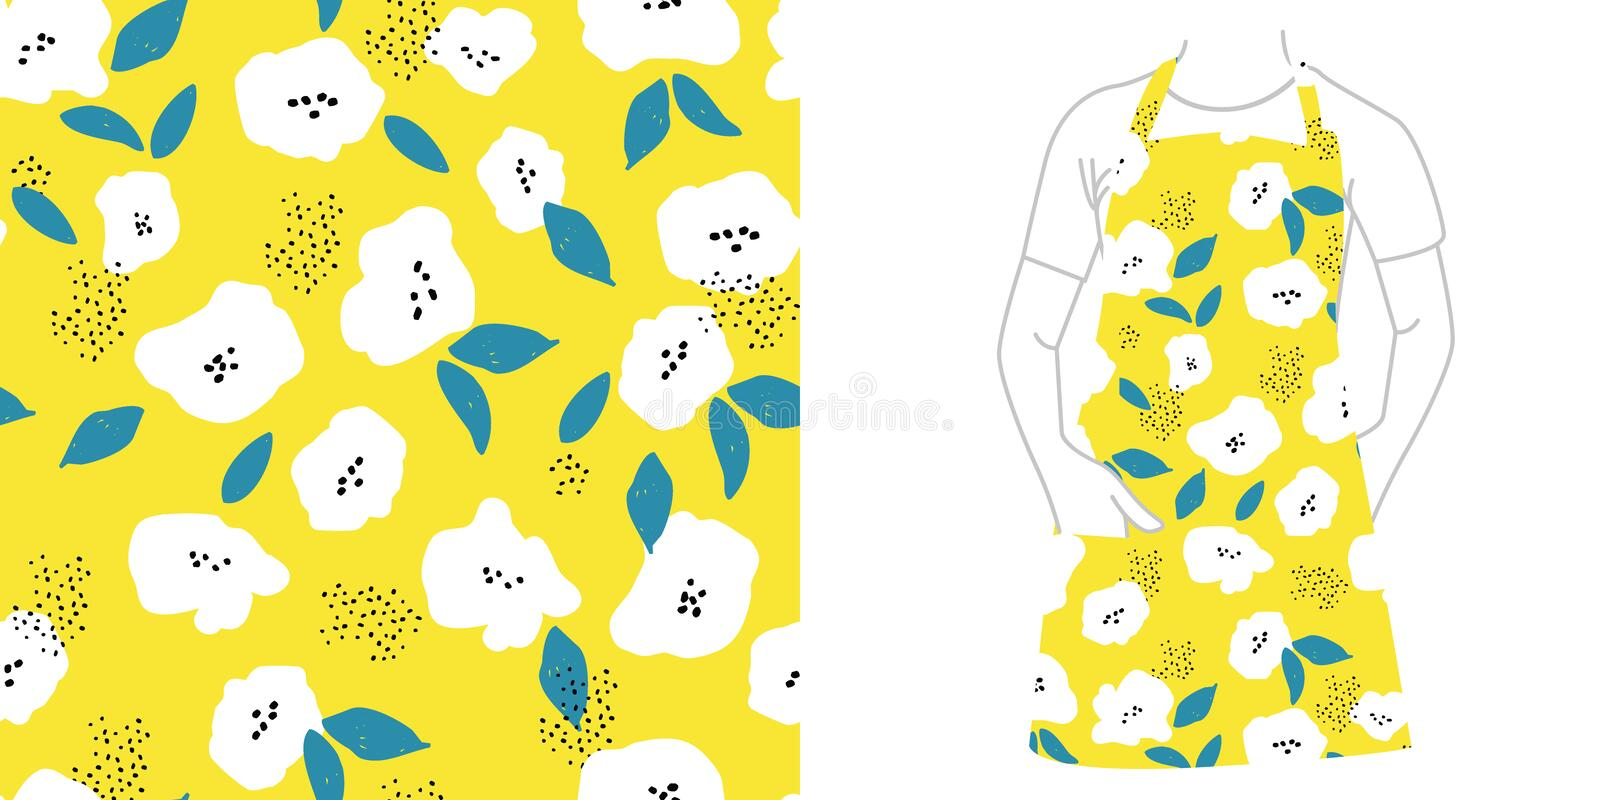 Seamless pattern. Seeds and flowers. vector illustration